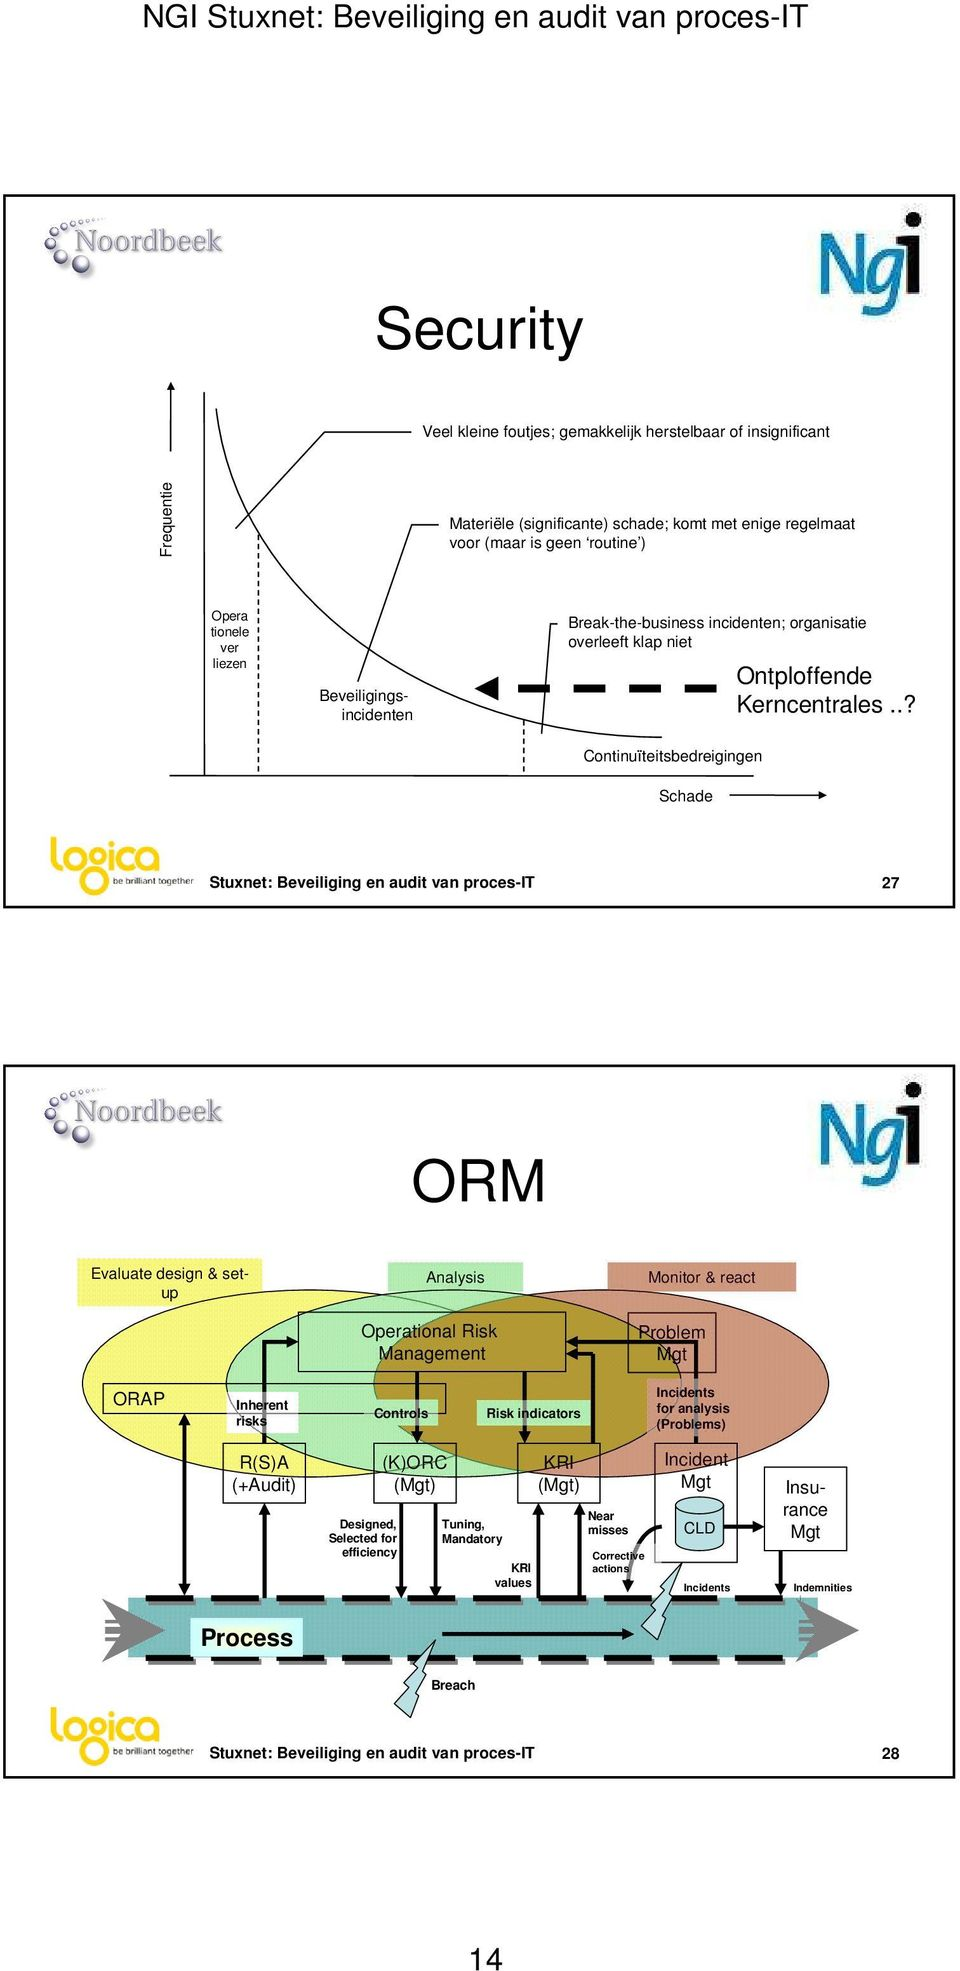 .? Continuïteitsbedreigingen Schade Stuxnet: Beveiliging en audit van proces-it 27 ORM Evaluate design & setup Analysis Operational Risk Management Monitor & react Problem Mgt ORAP Inherent risks